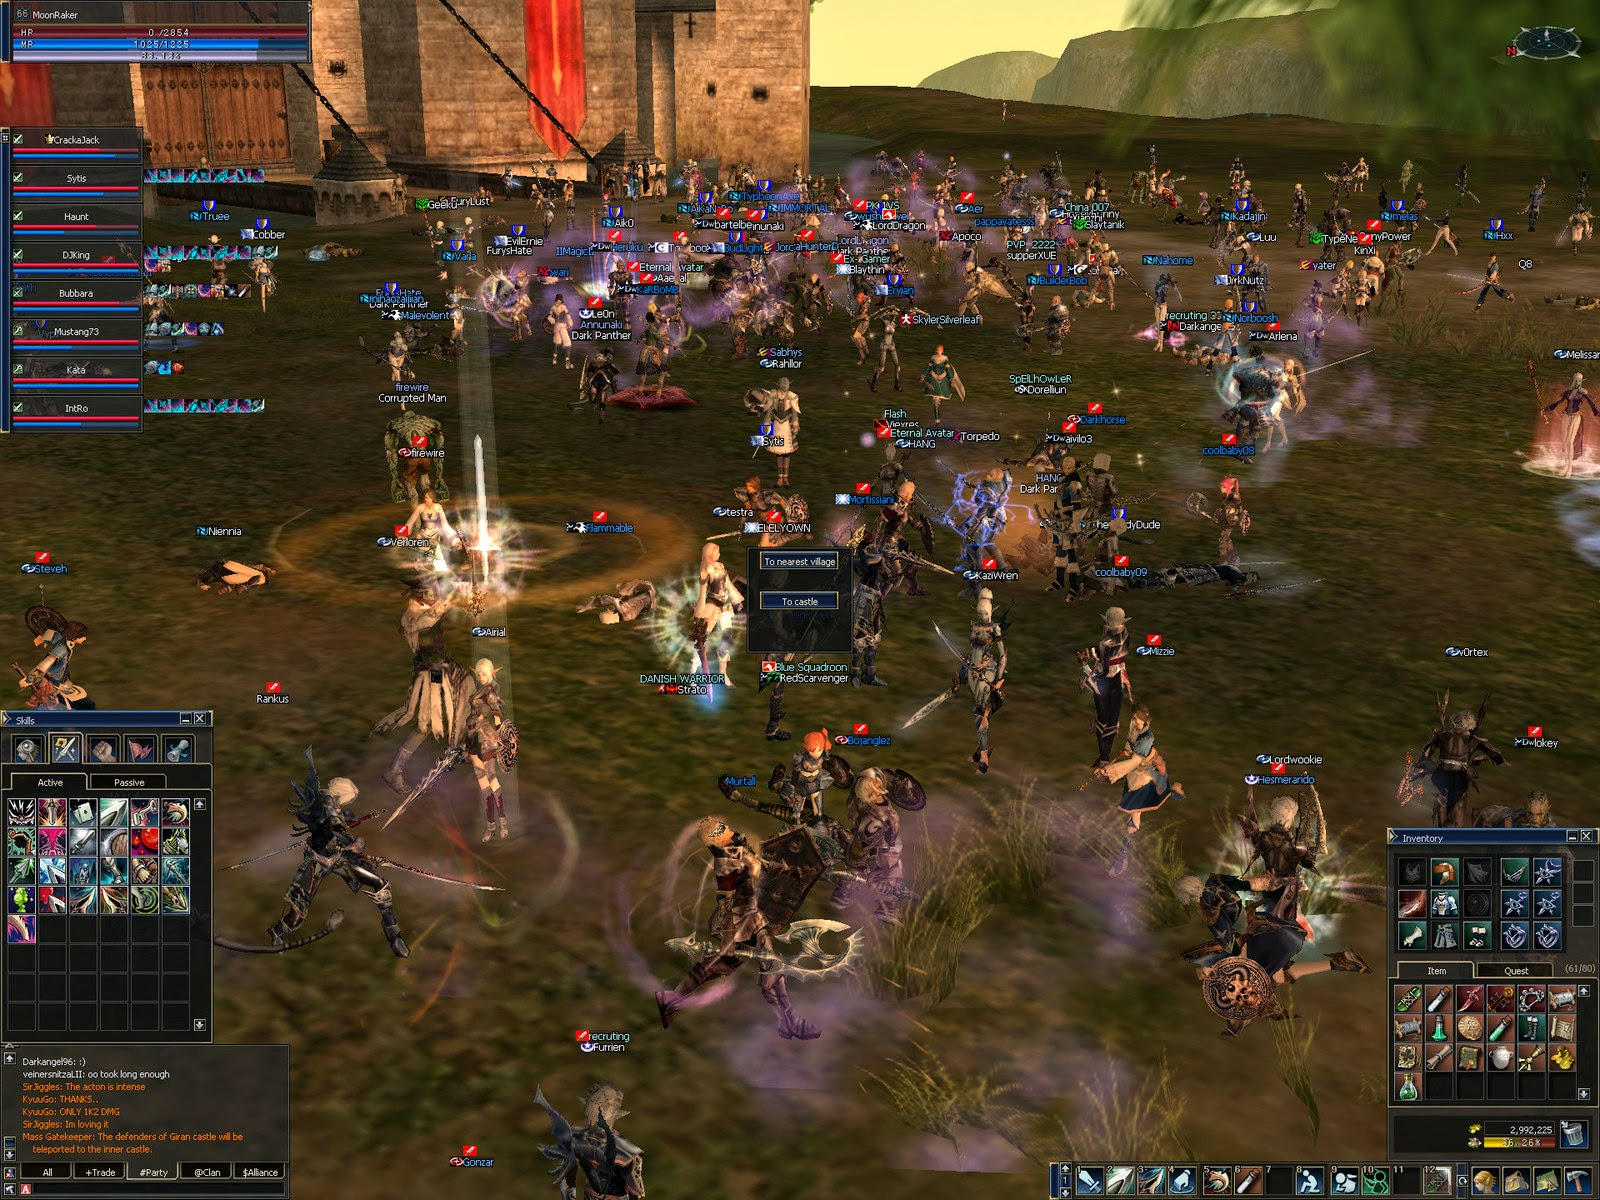 Pin Lineage 2 Mmorpg Screenshot picture to pinterest.